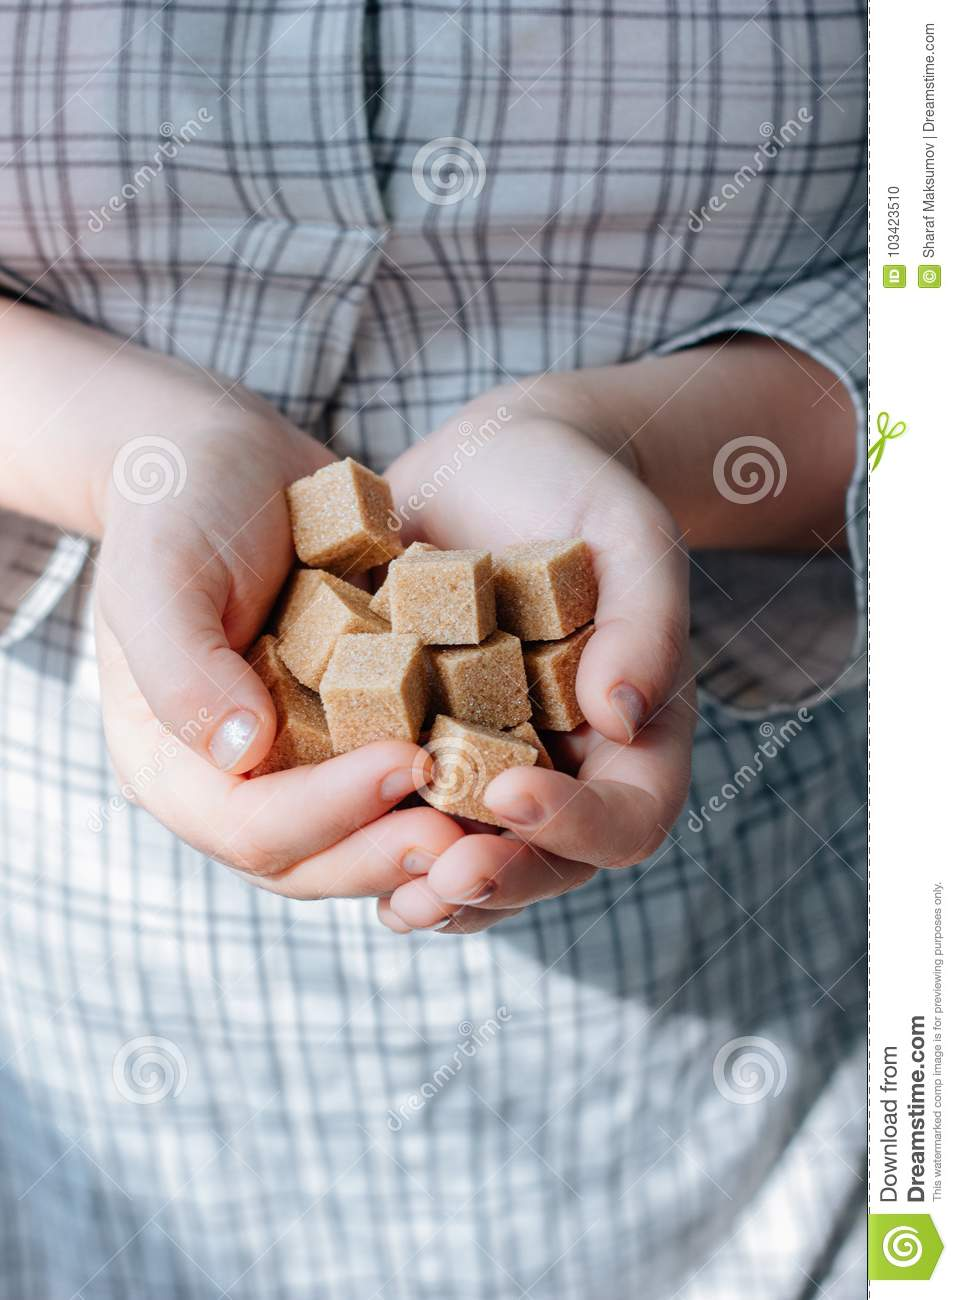 Woman holds brown sugar cubes in hands.